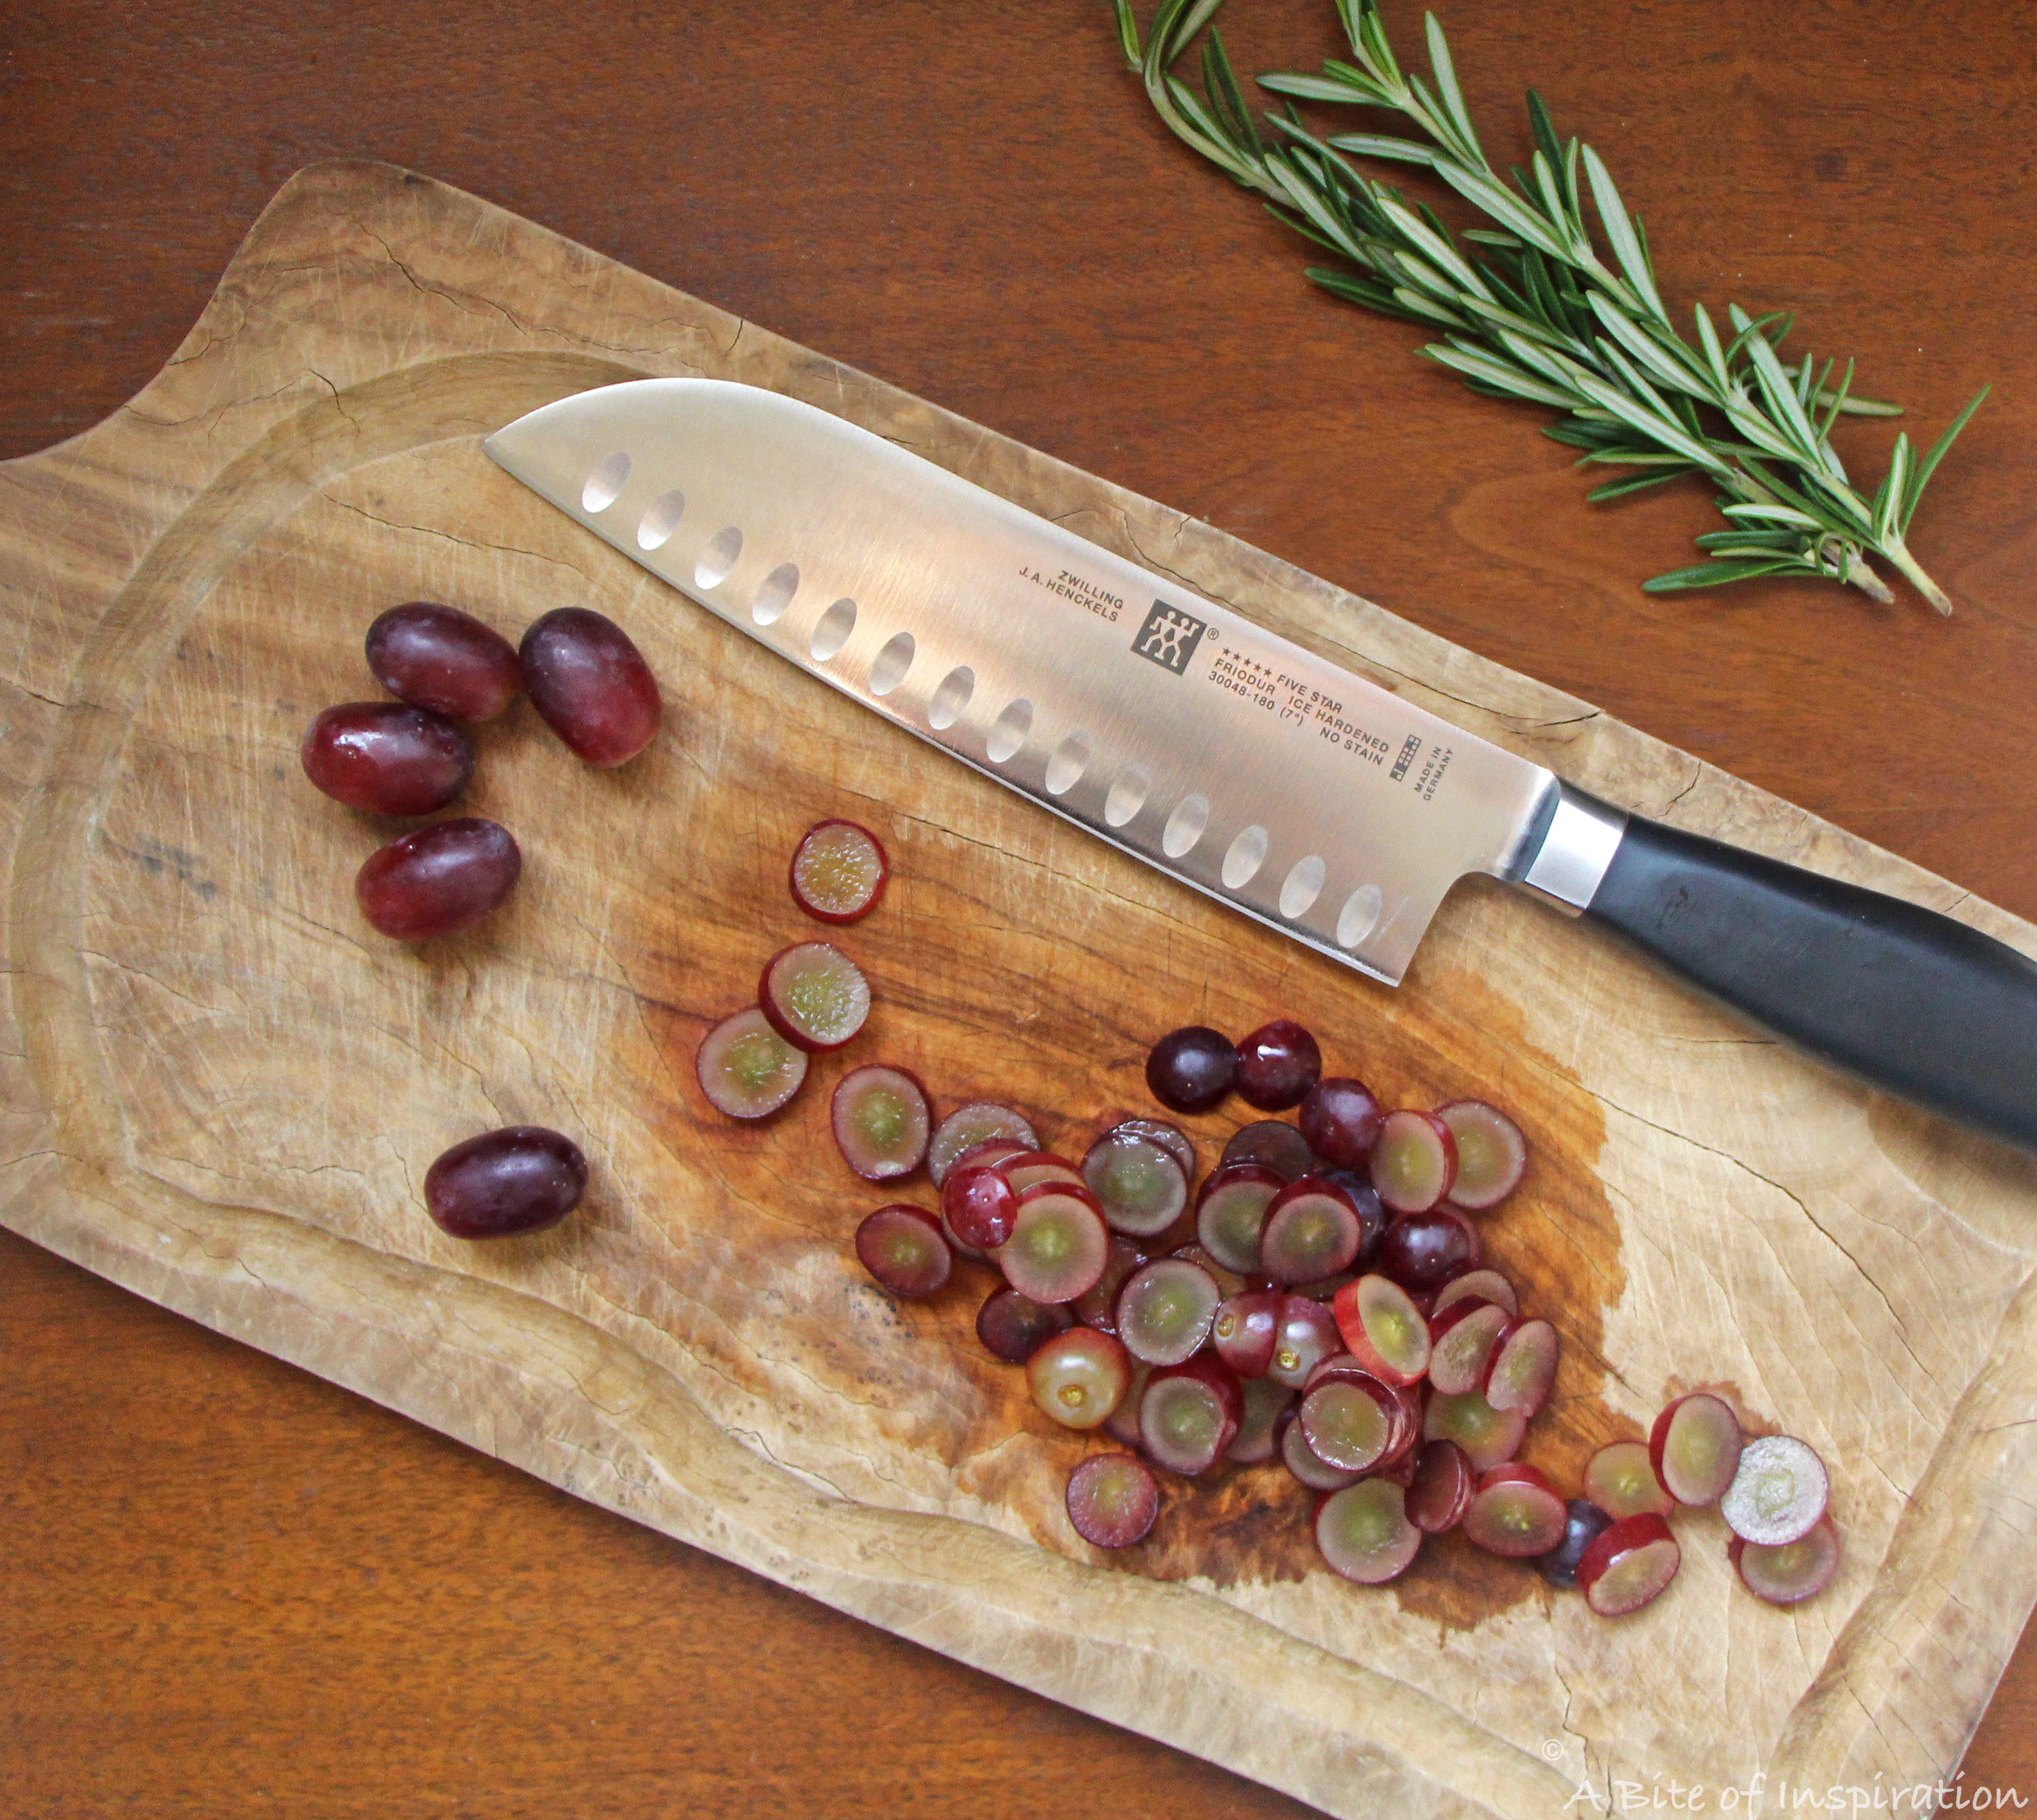 Sliced red grapes on a wooden cutting board ready for pickling with a sprig of fresh rosemary on the side